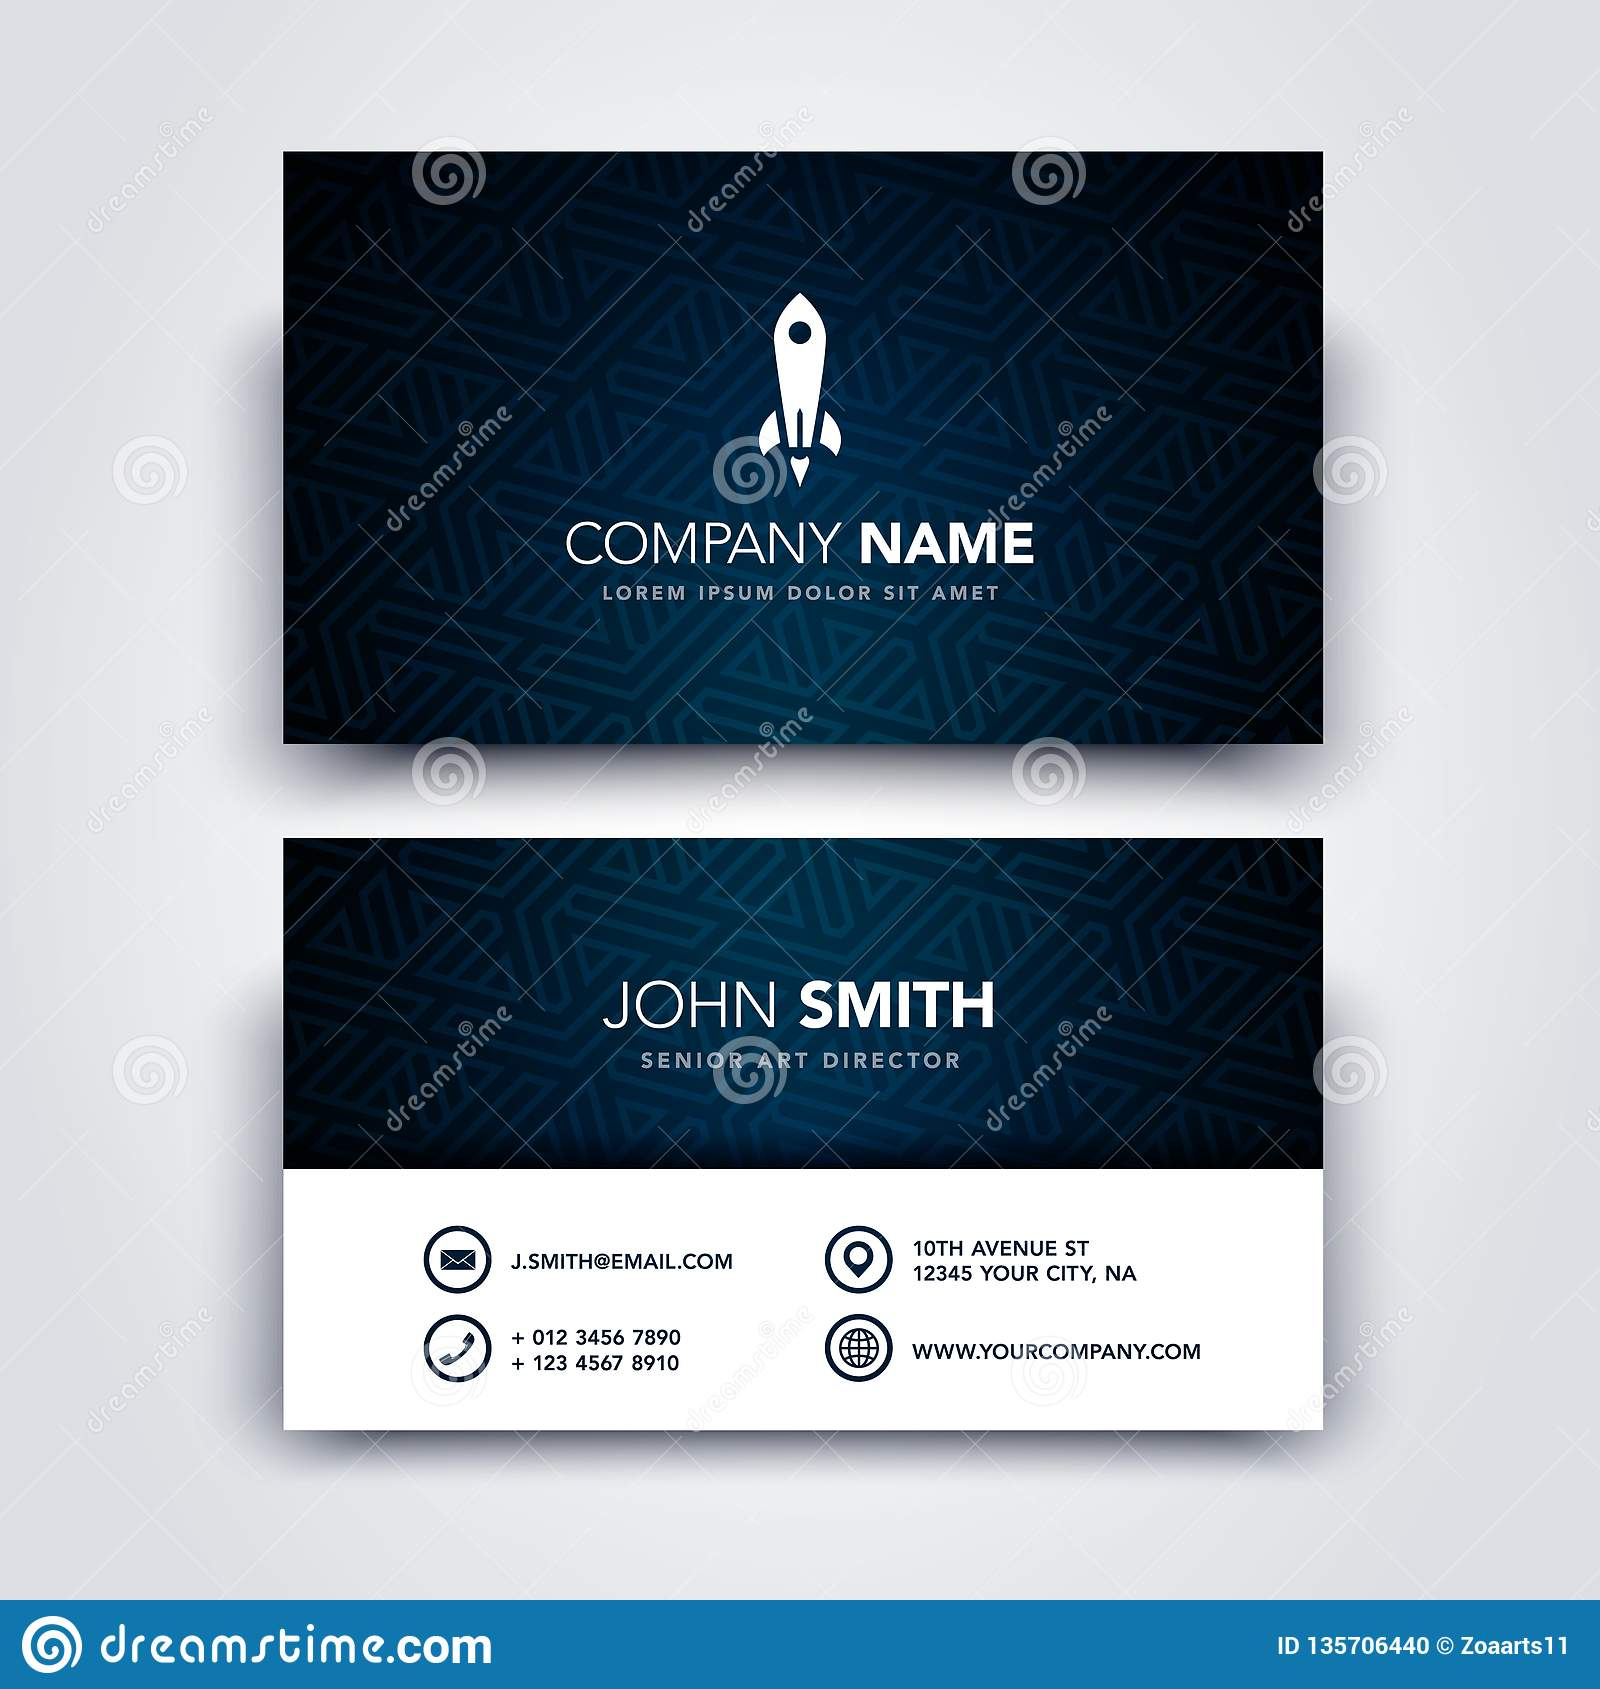 Vector Illustration Modern Creative Dark and Clean Business Card Template - Front and Backside